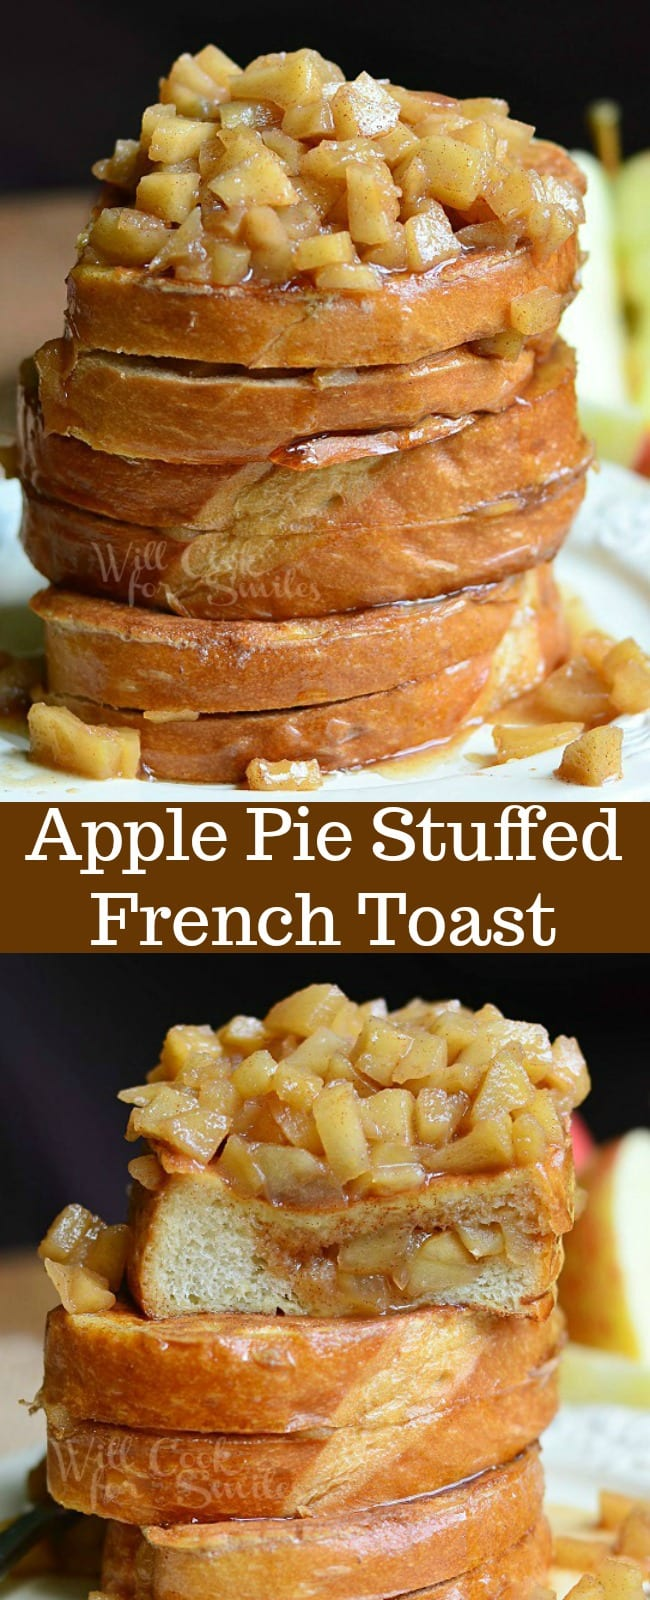 Apple Pie Stuffed French Toast Recipe.This Stuffed French Toast is topped and filled with an easy homemadeapple pie filling. #frenchtoast #breakfast #brunch #applepie #apple #topping